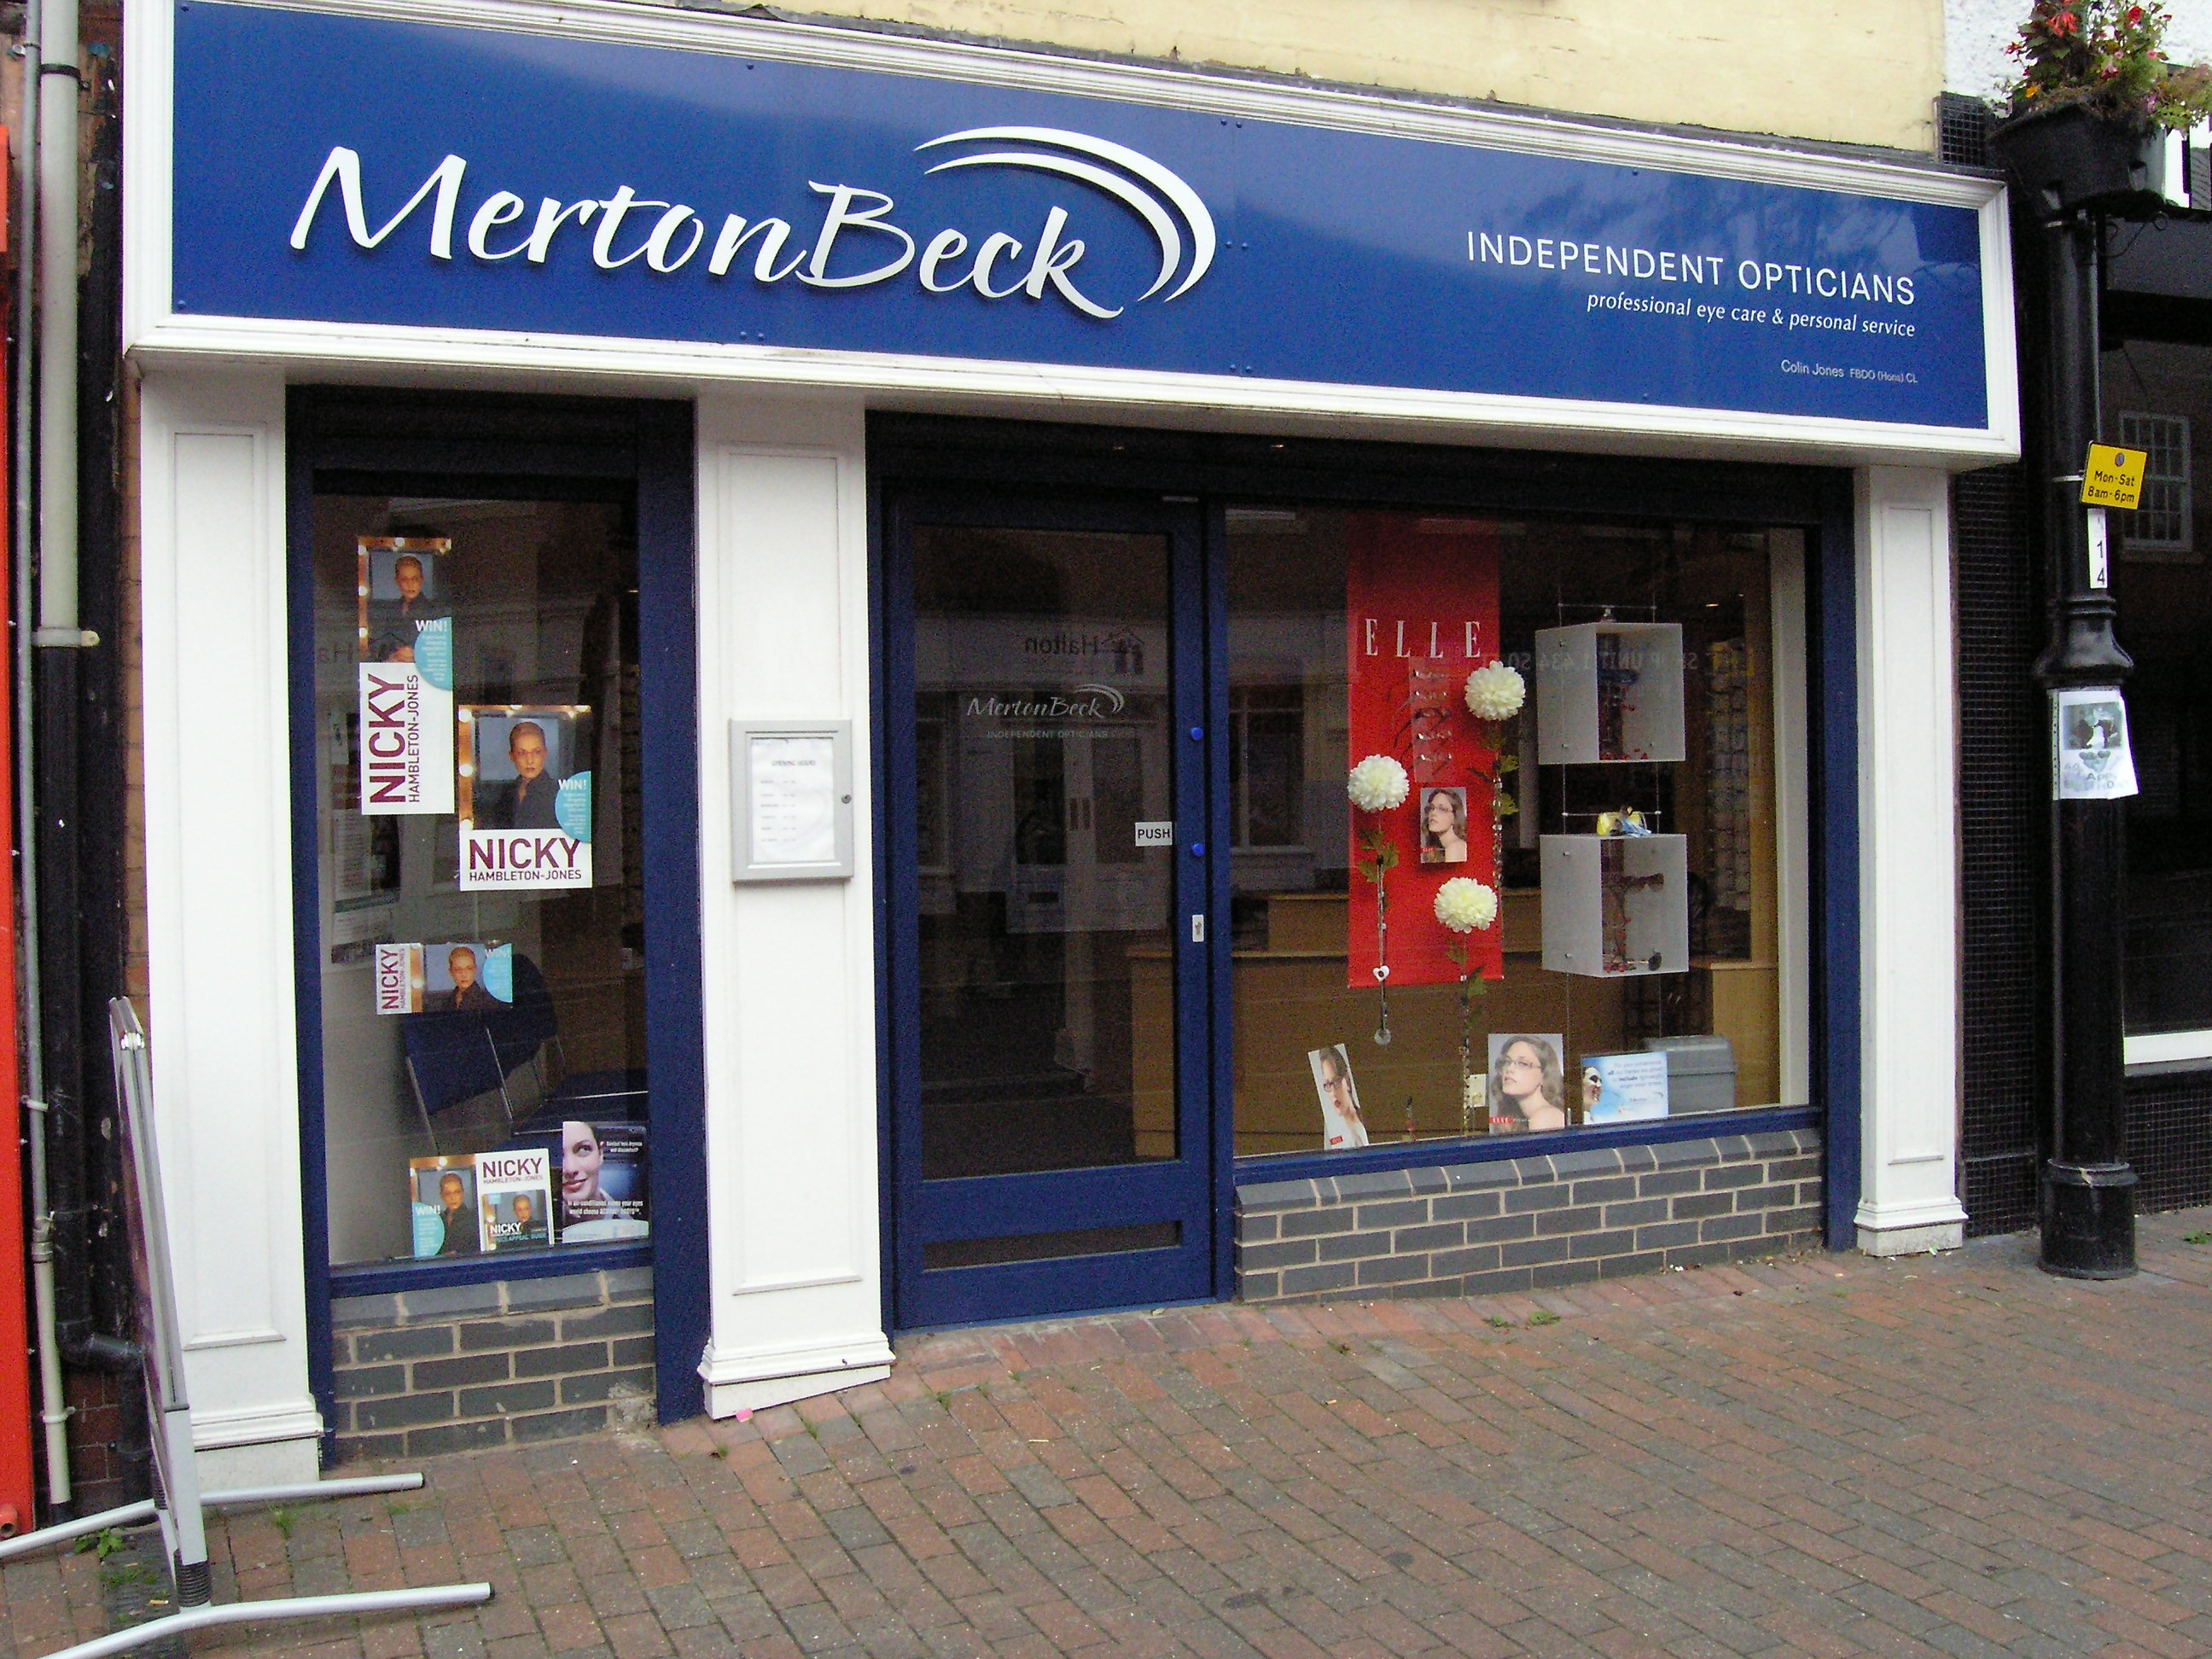 Merton Beck Opticians